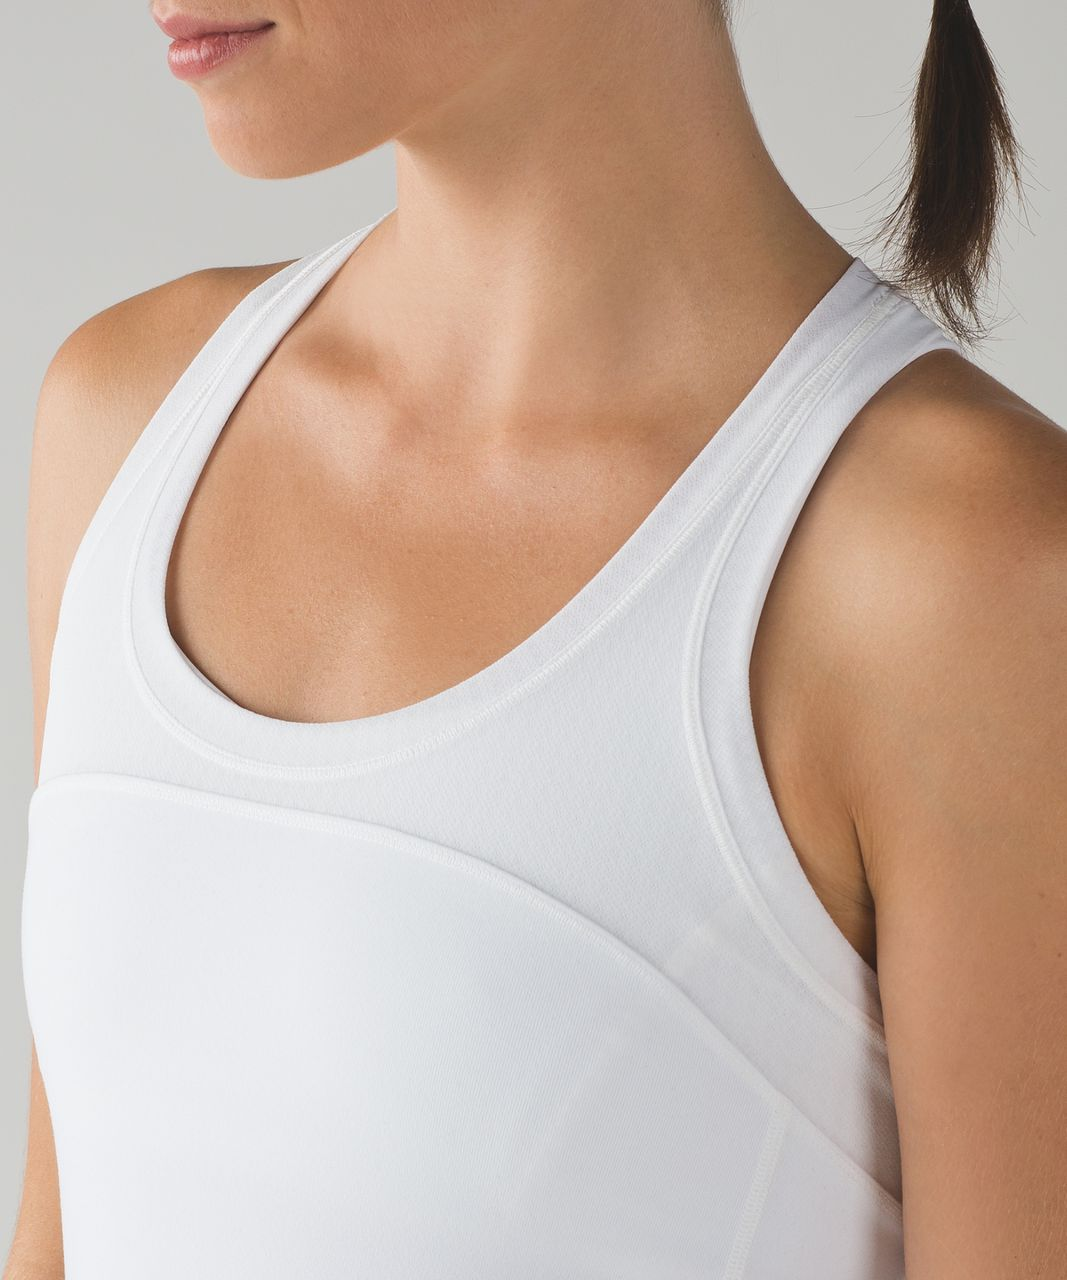 Lululemon Cool Racerback II Deep Breath - White